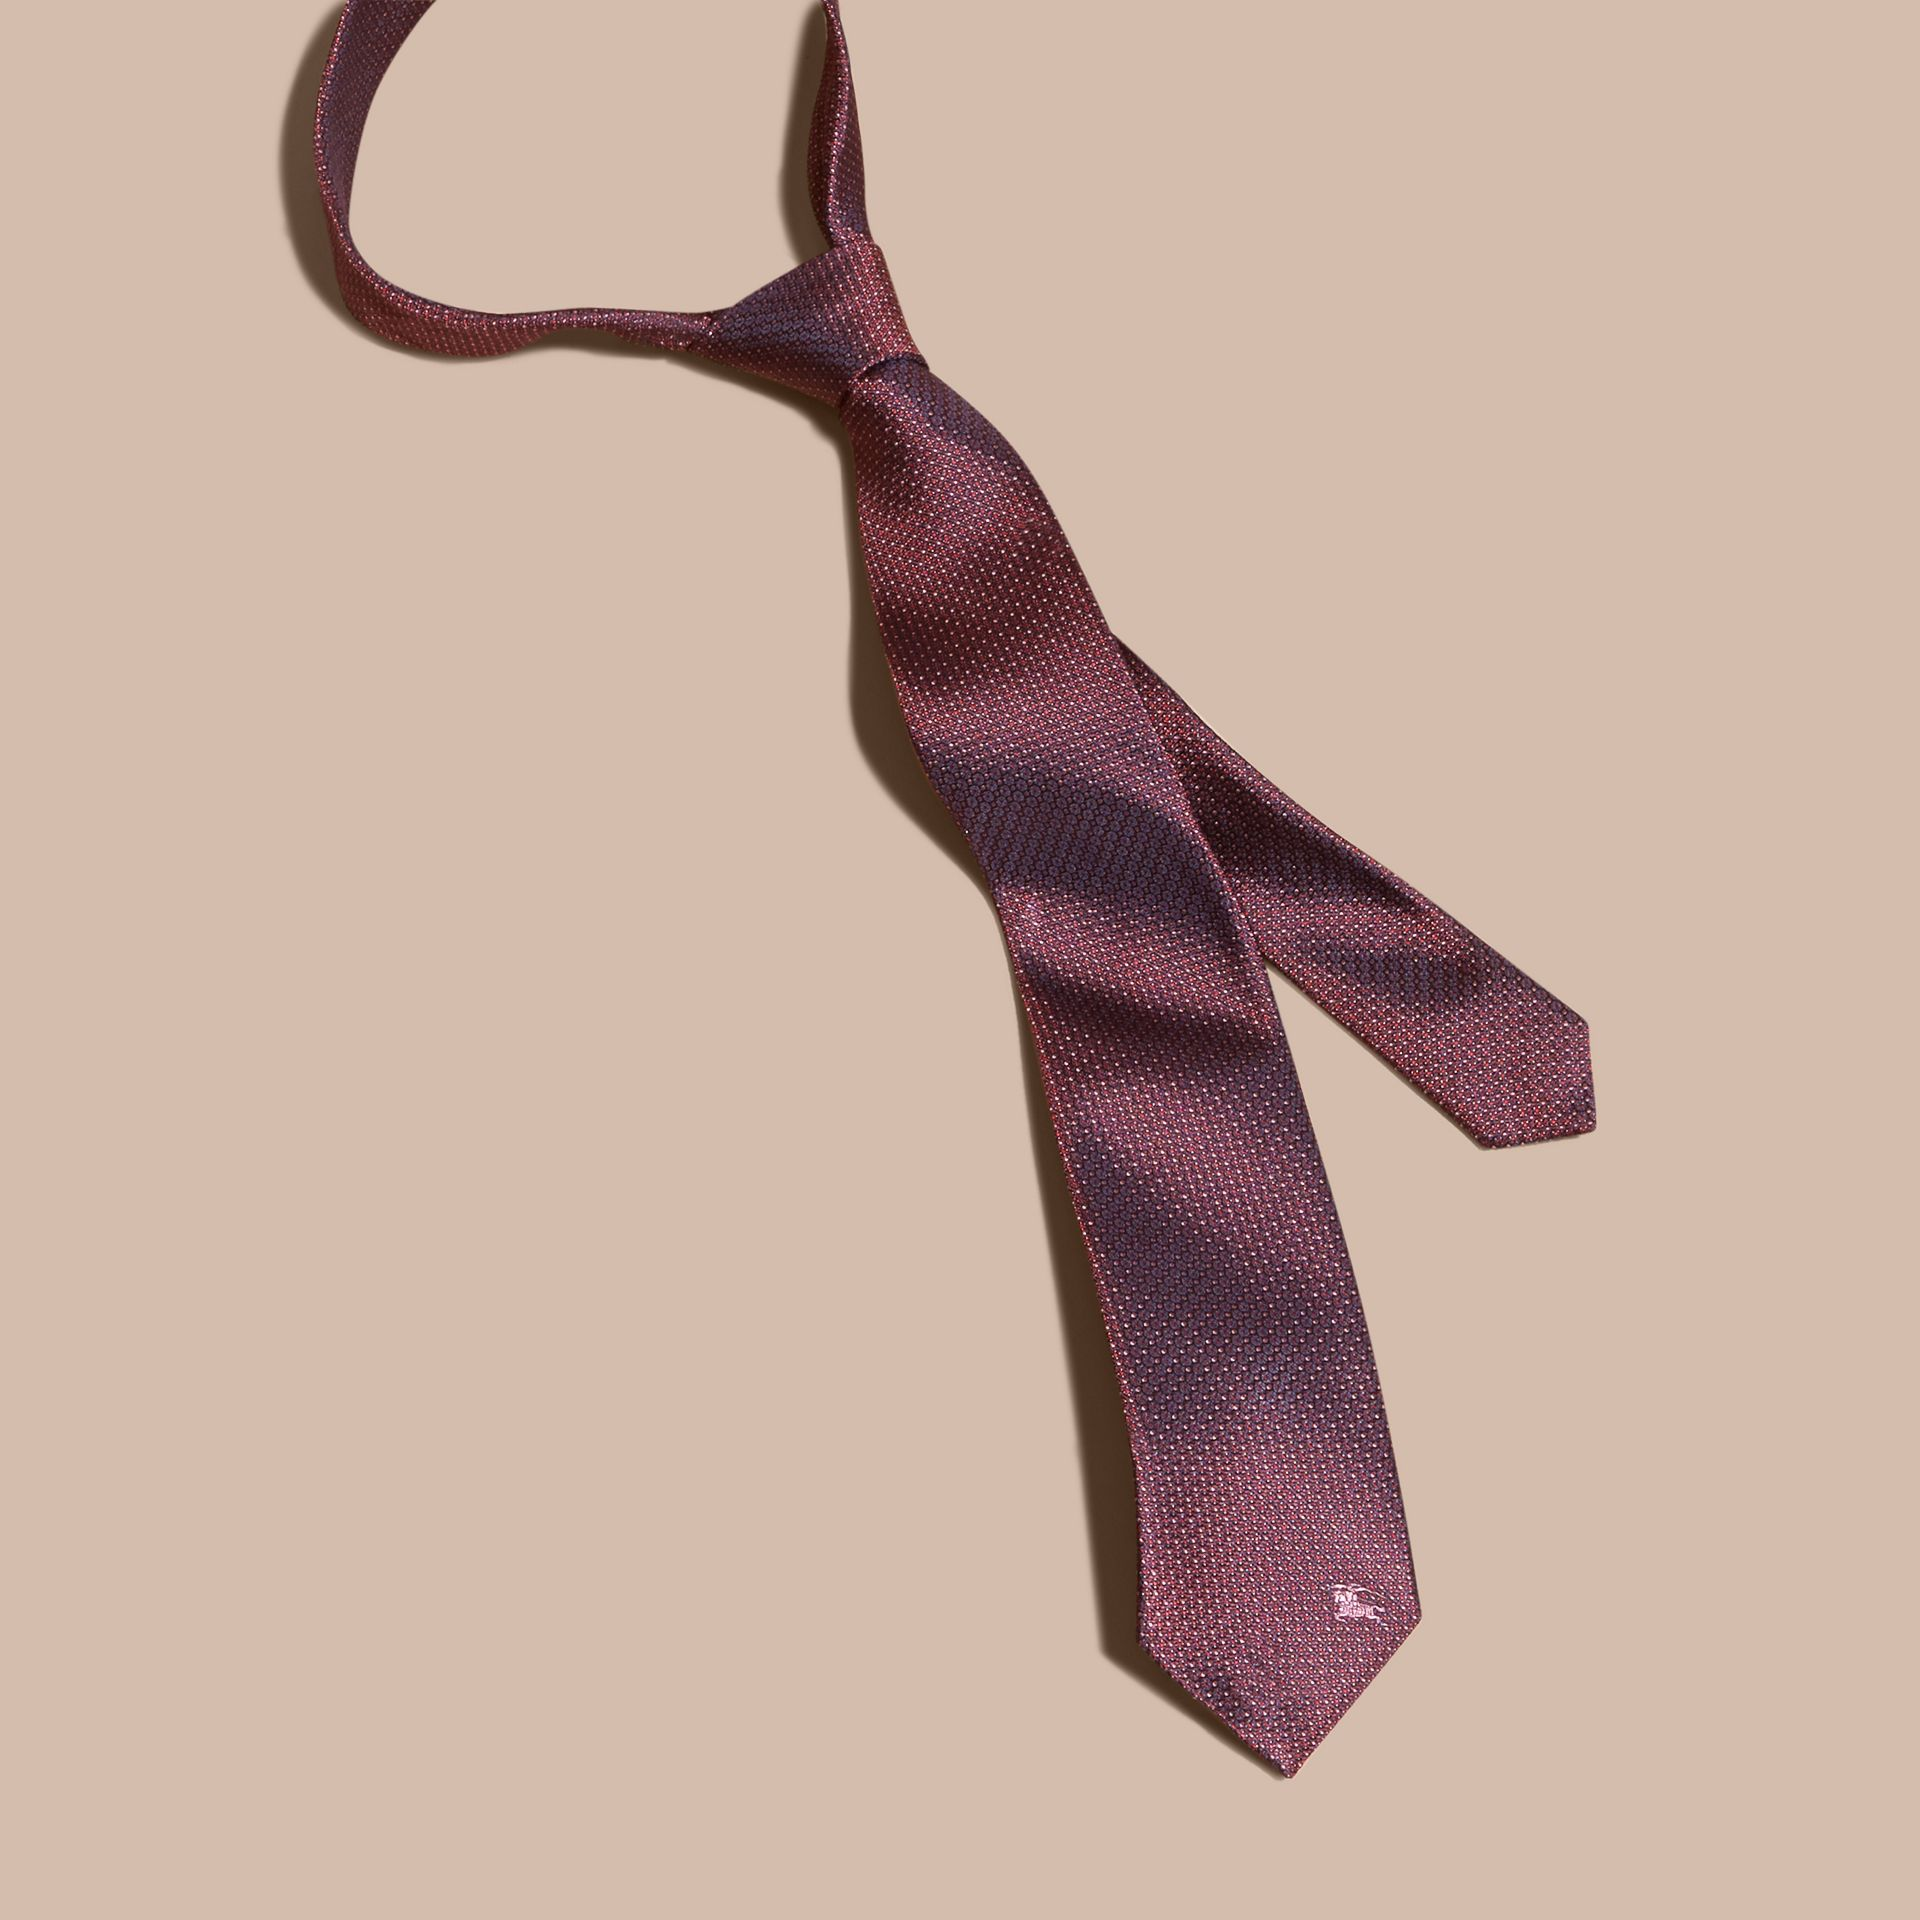 Modern Cut Patterned Silk Tie in Deep Claret - Men | Burberry Singapore - gallery image 2